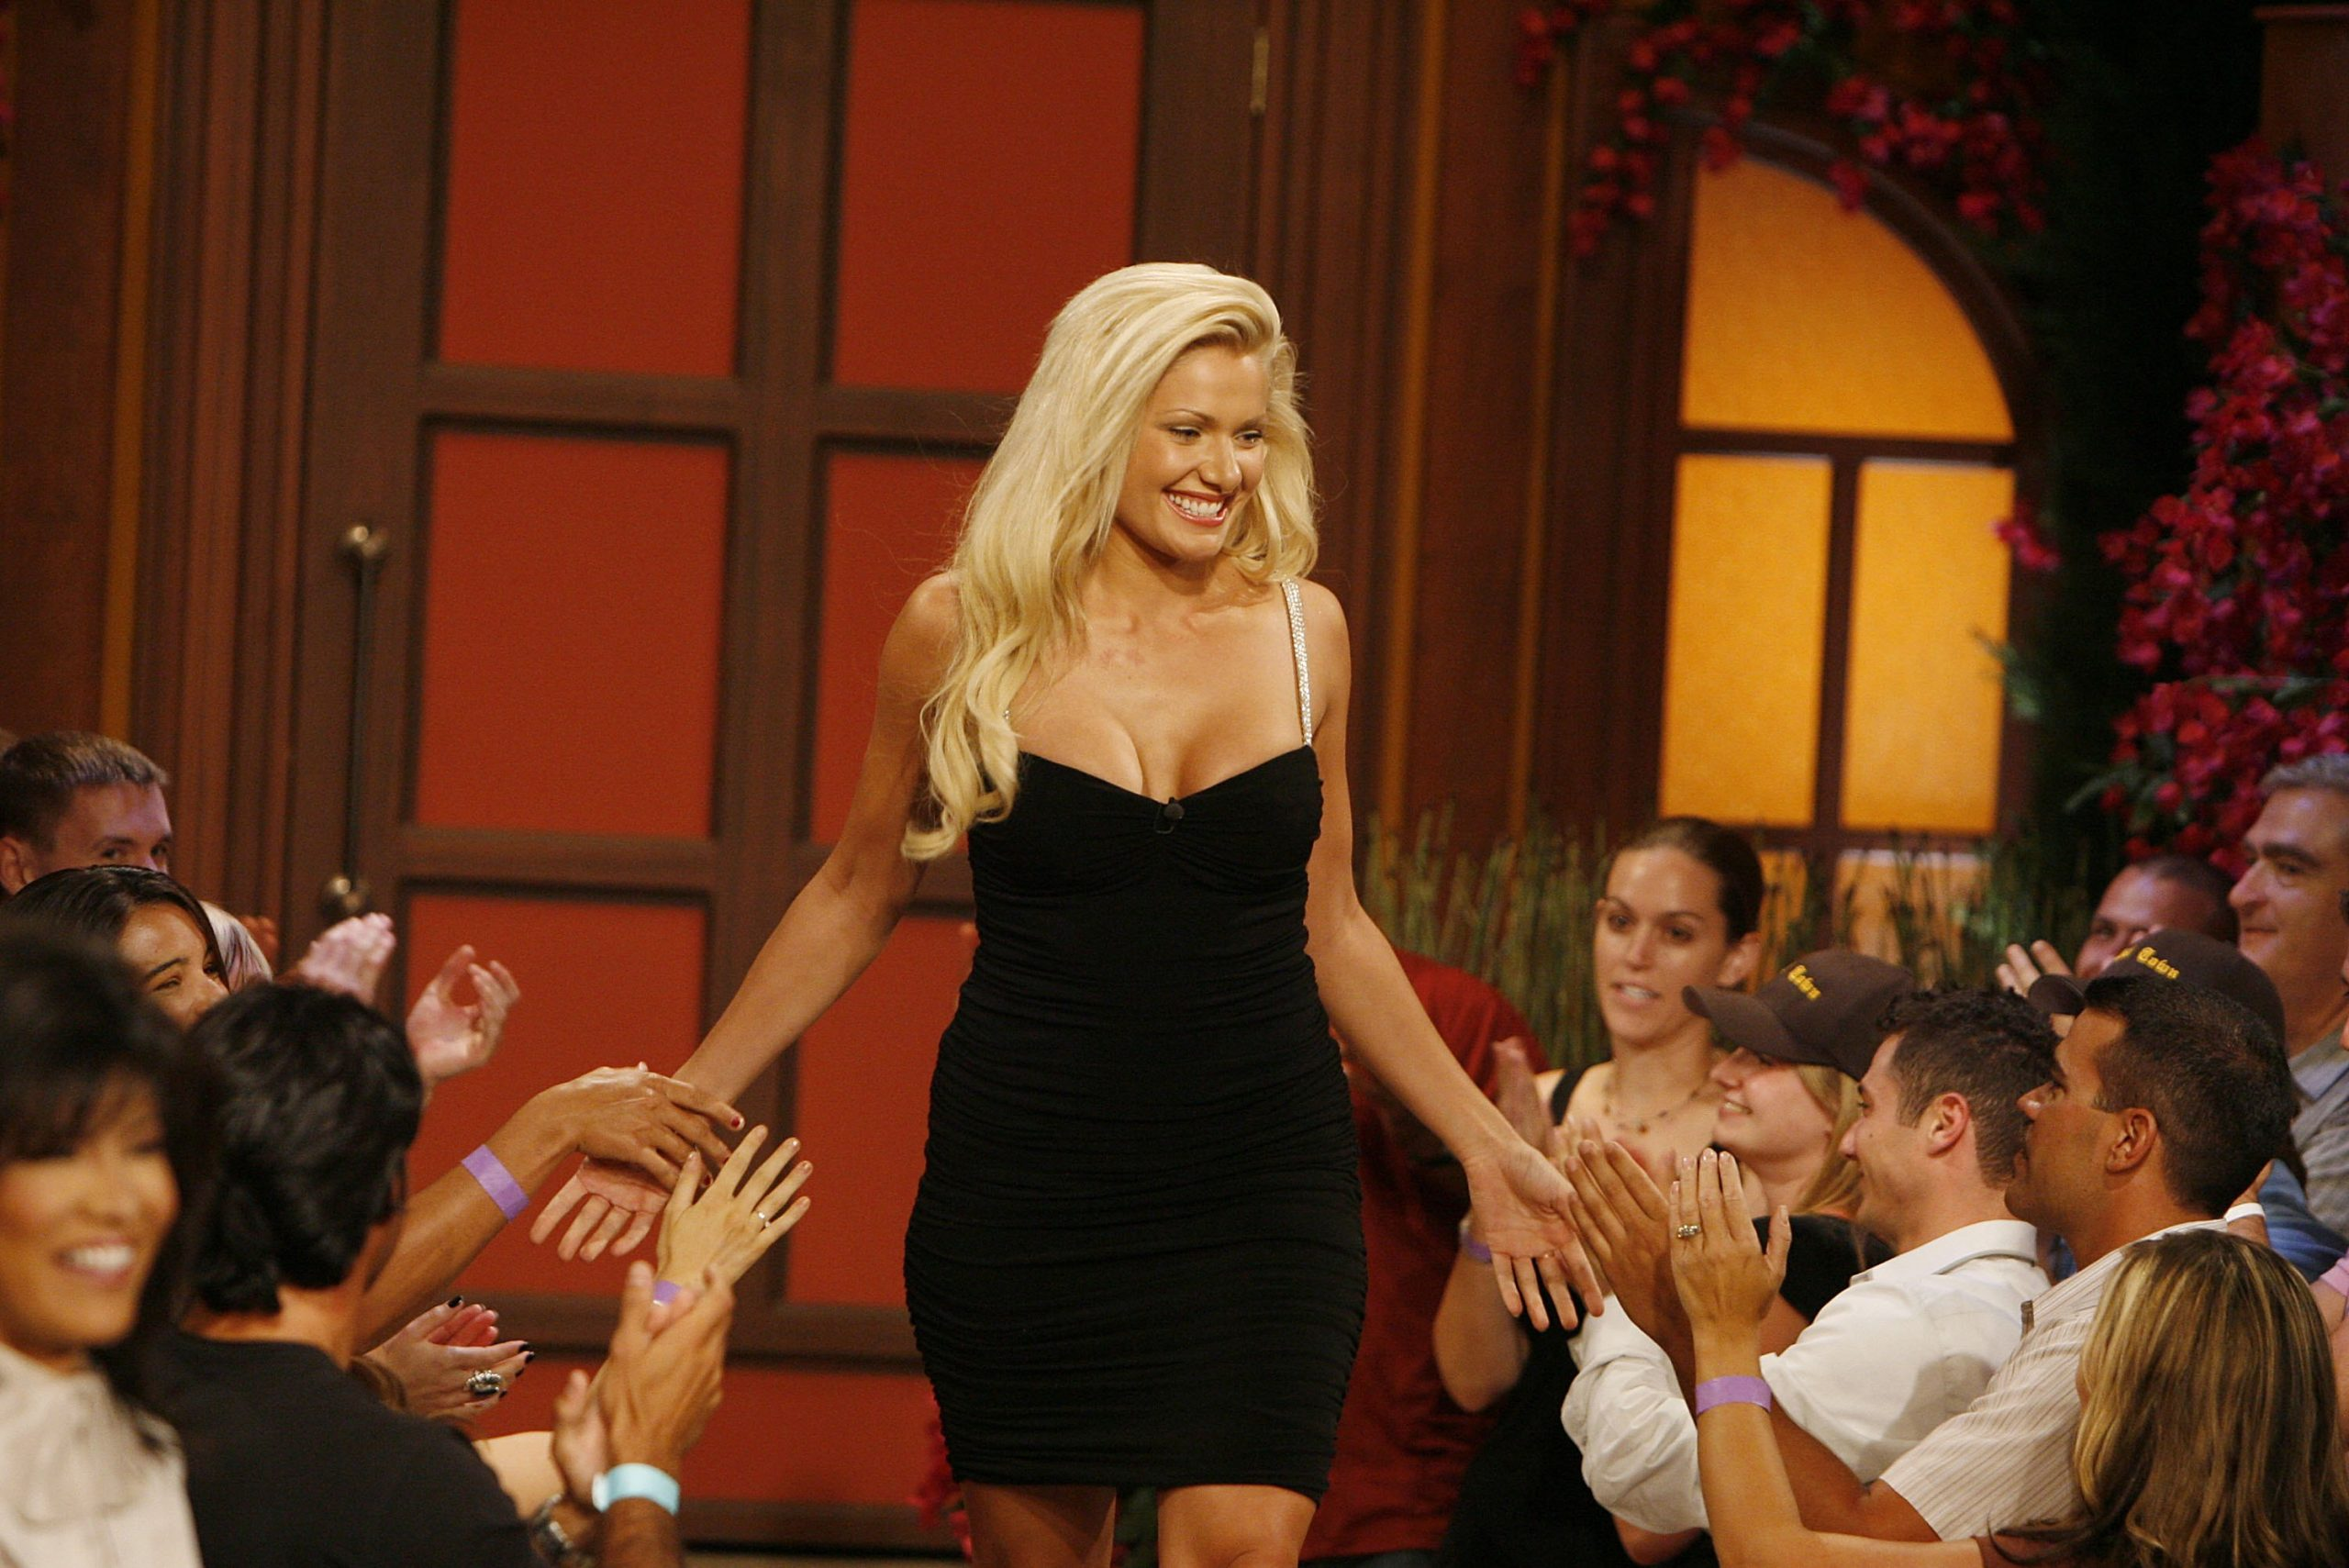 Janelle Pierzina greets audience members at Big Brother 7: All-Stars